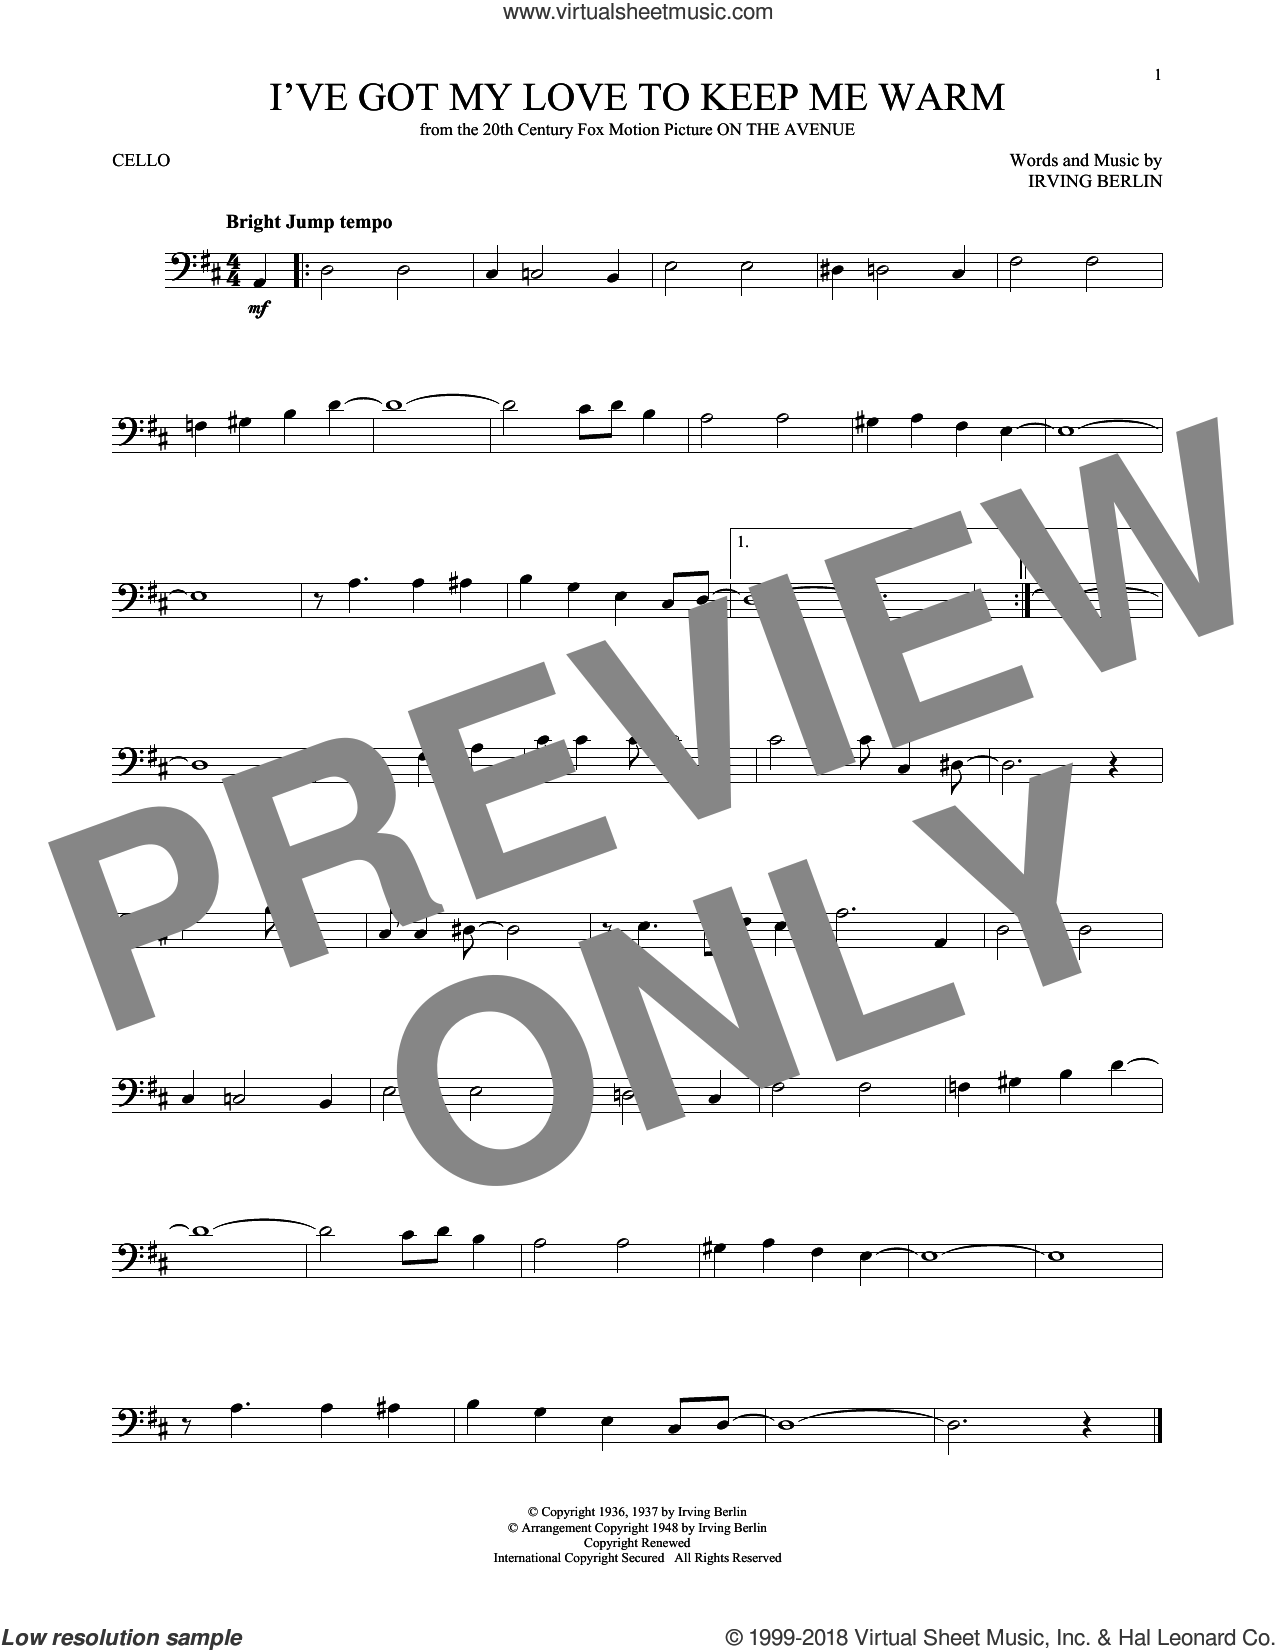 I've Got My Love To Keep Me Warm sheet music for cello solo by Irving Berlin and Benny Goodman, intermediate skill level